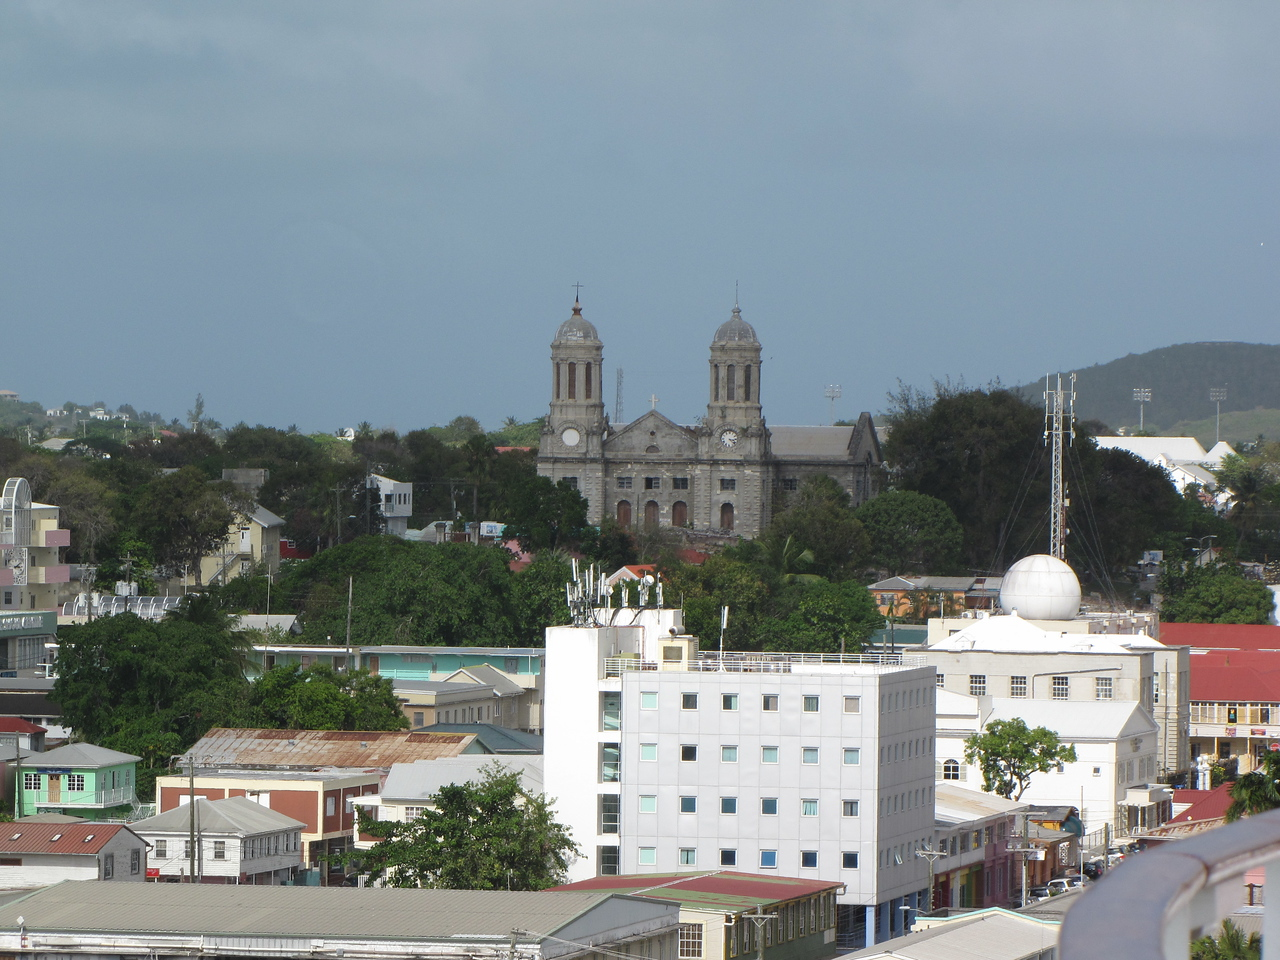 The Cathedral of St. John the Devine dates from 1683, but the current structure was built in 1834 after an earthquake damaged the original.